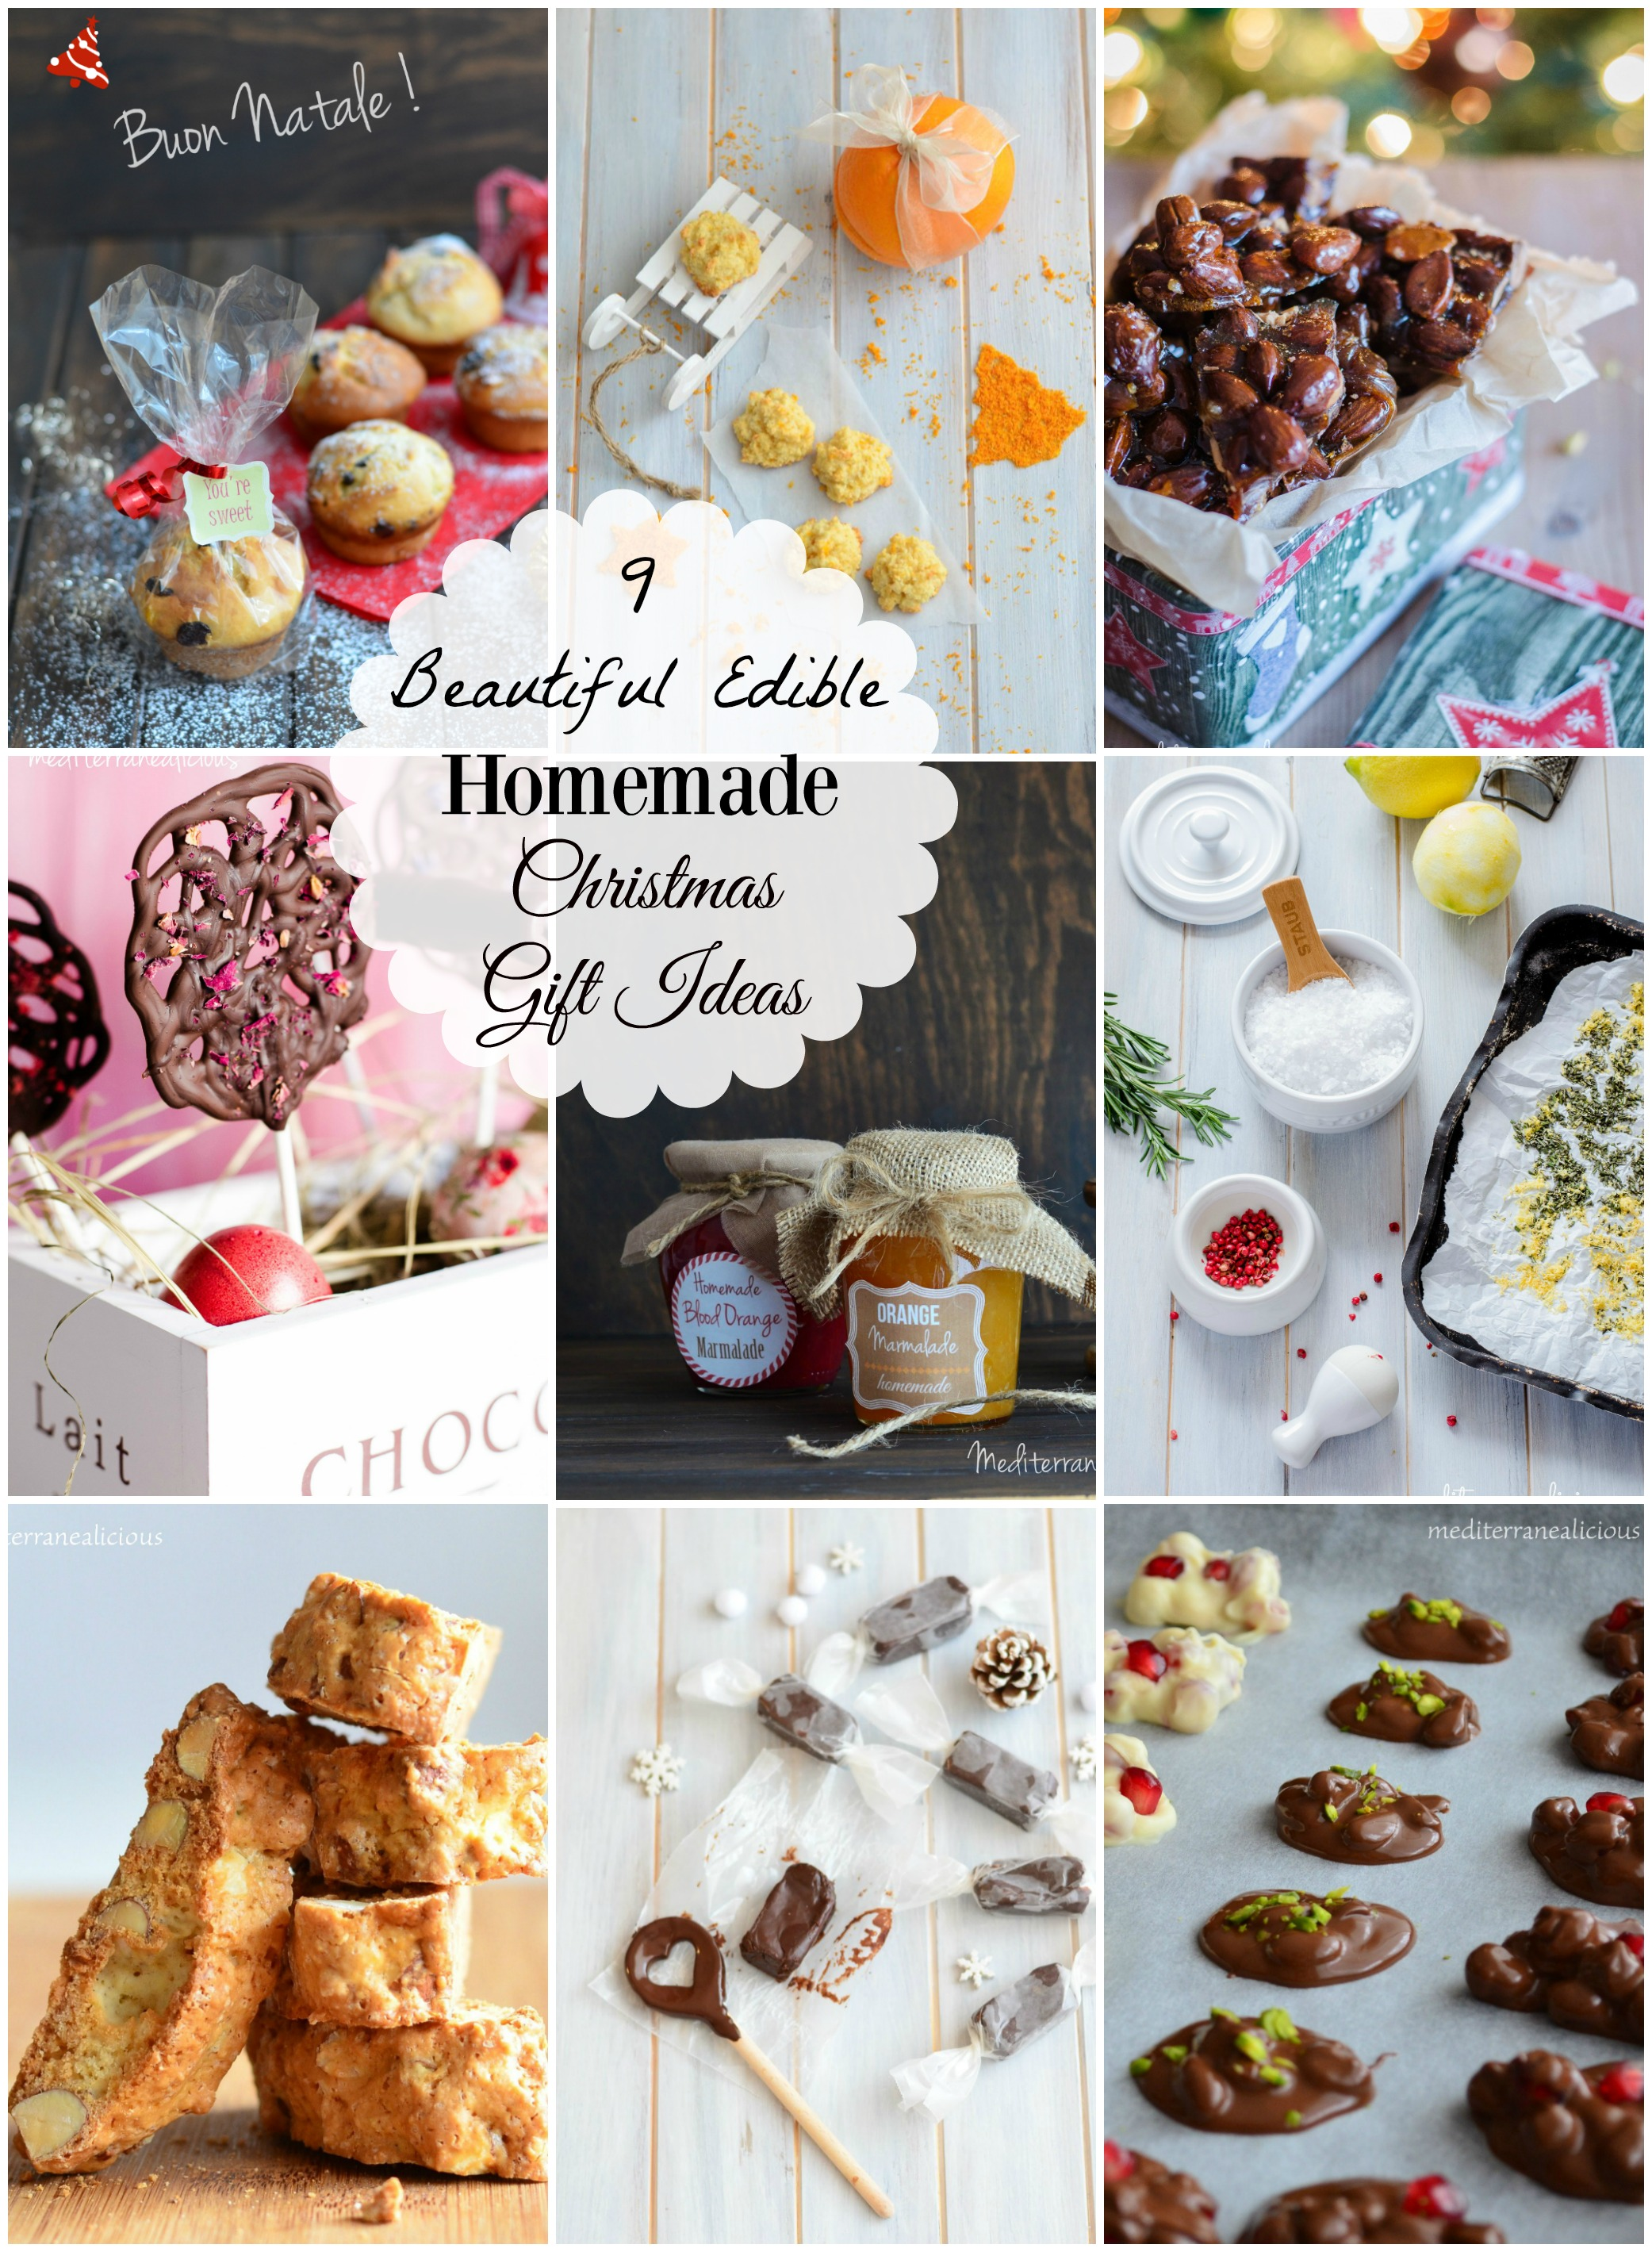 Beautiful Edible Homemade Christmas Gift Ideas